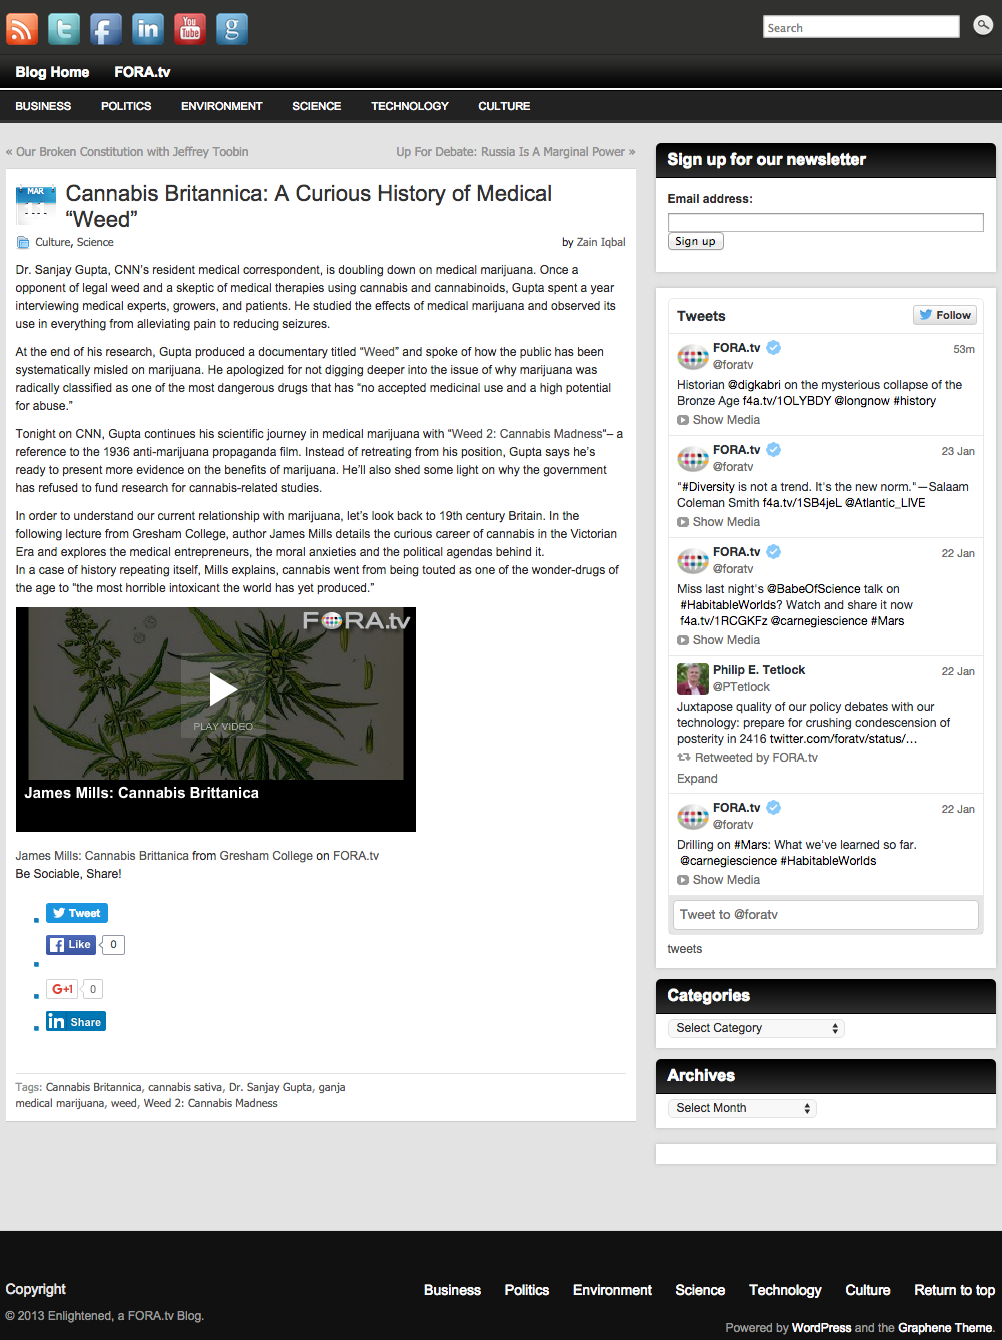 screencapture-enarchive-fora-tv-2014-03-cannabis-britannica-a-curious-history-of-medical-weed.png